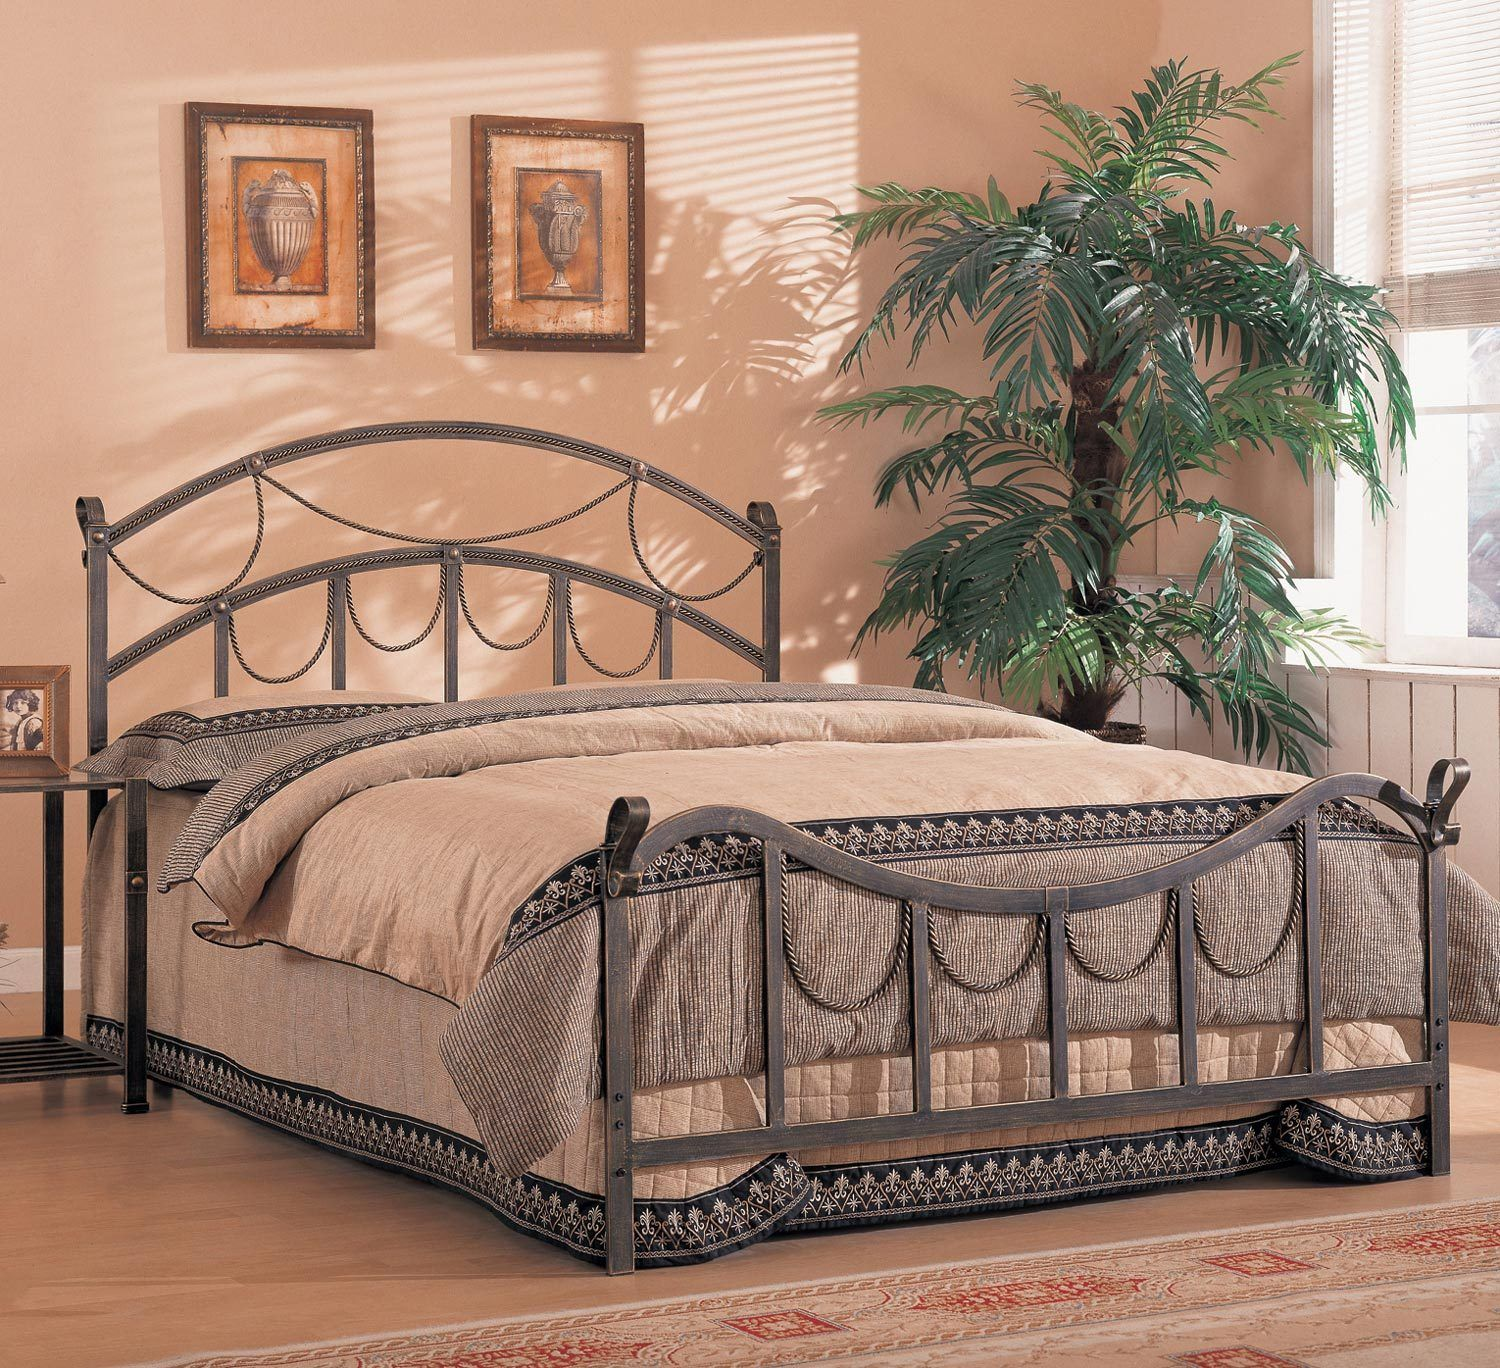 Whittier Queen Metal Bed